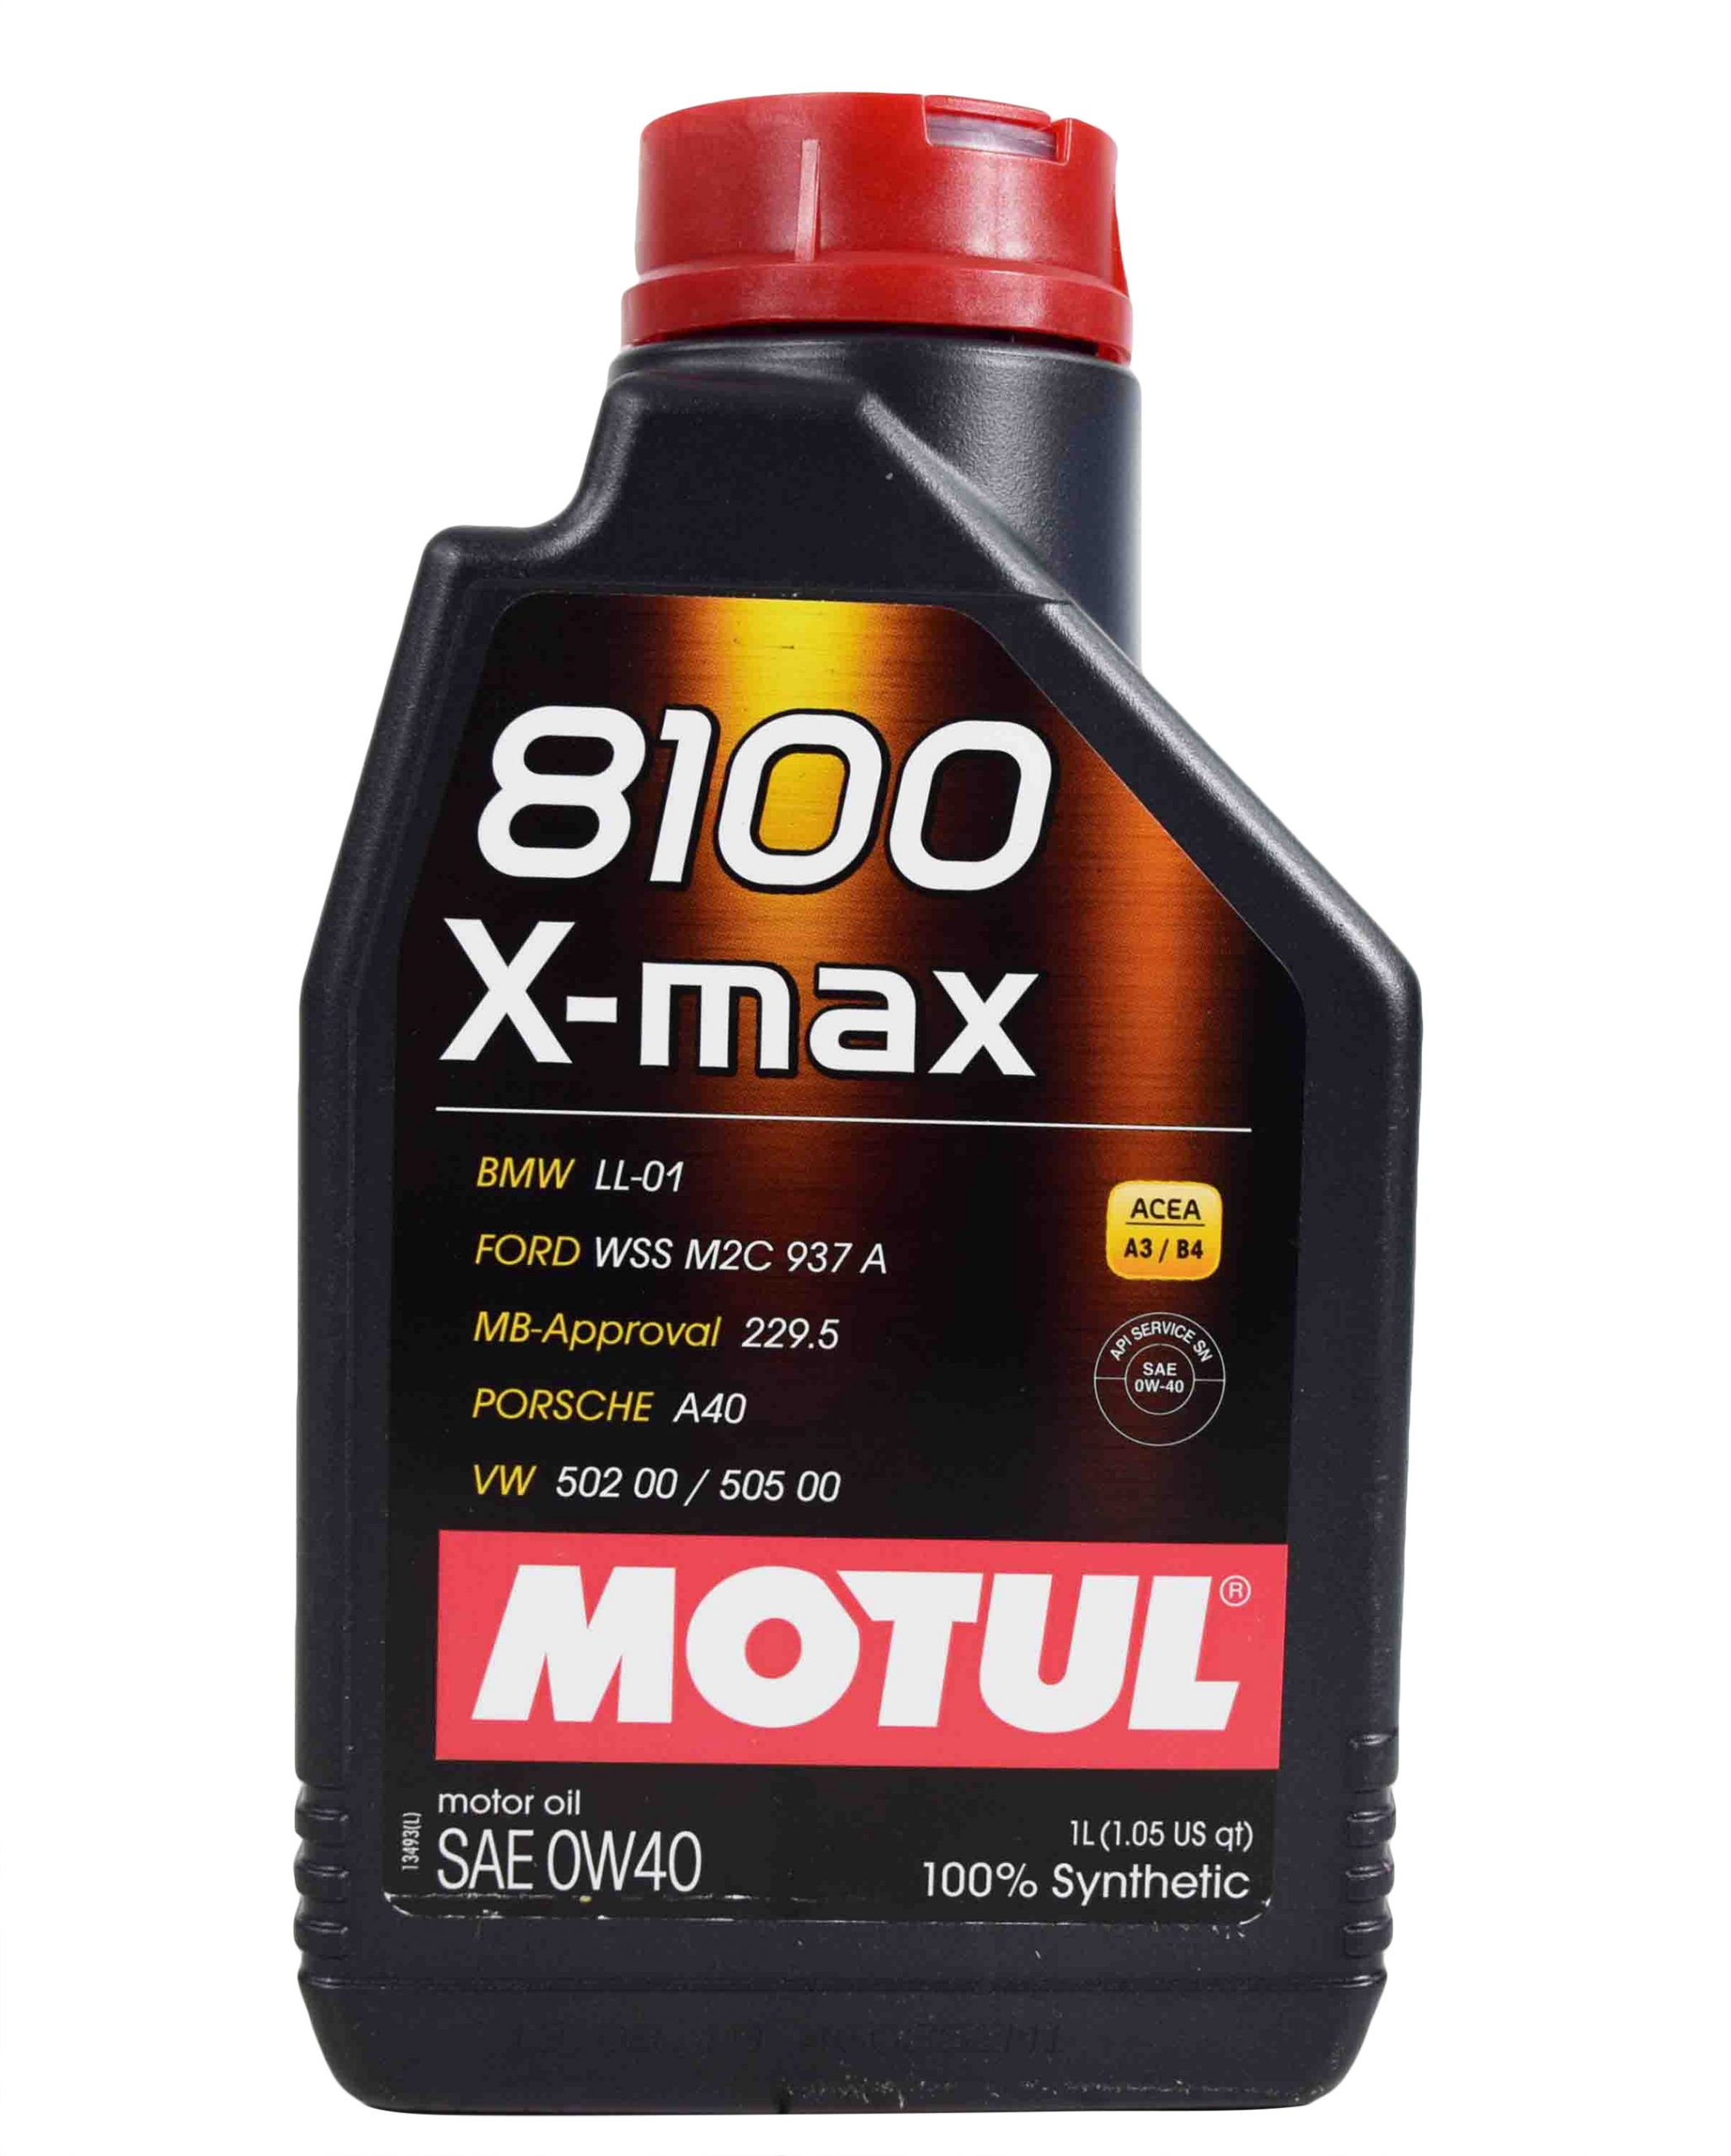 MOTUL Моторное масло 8100 X-max SAE 0w40 1л Full-synthetic